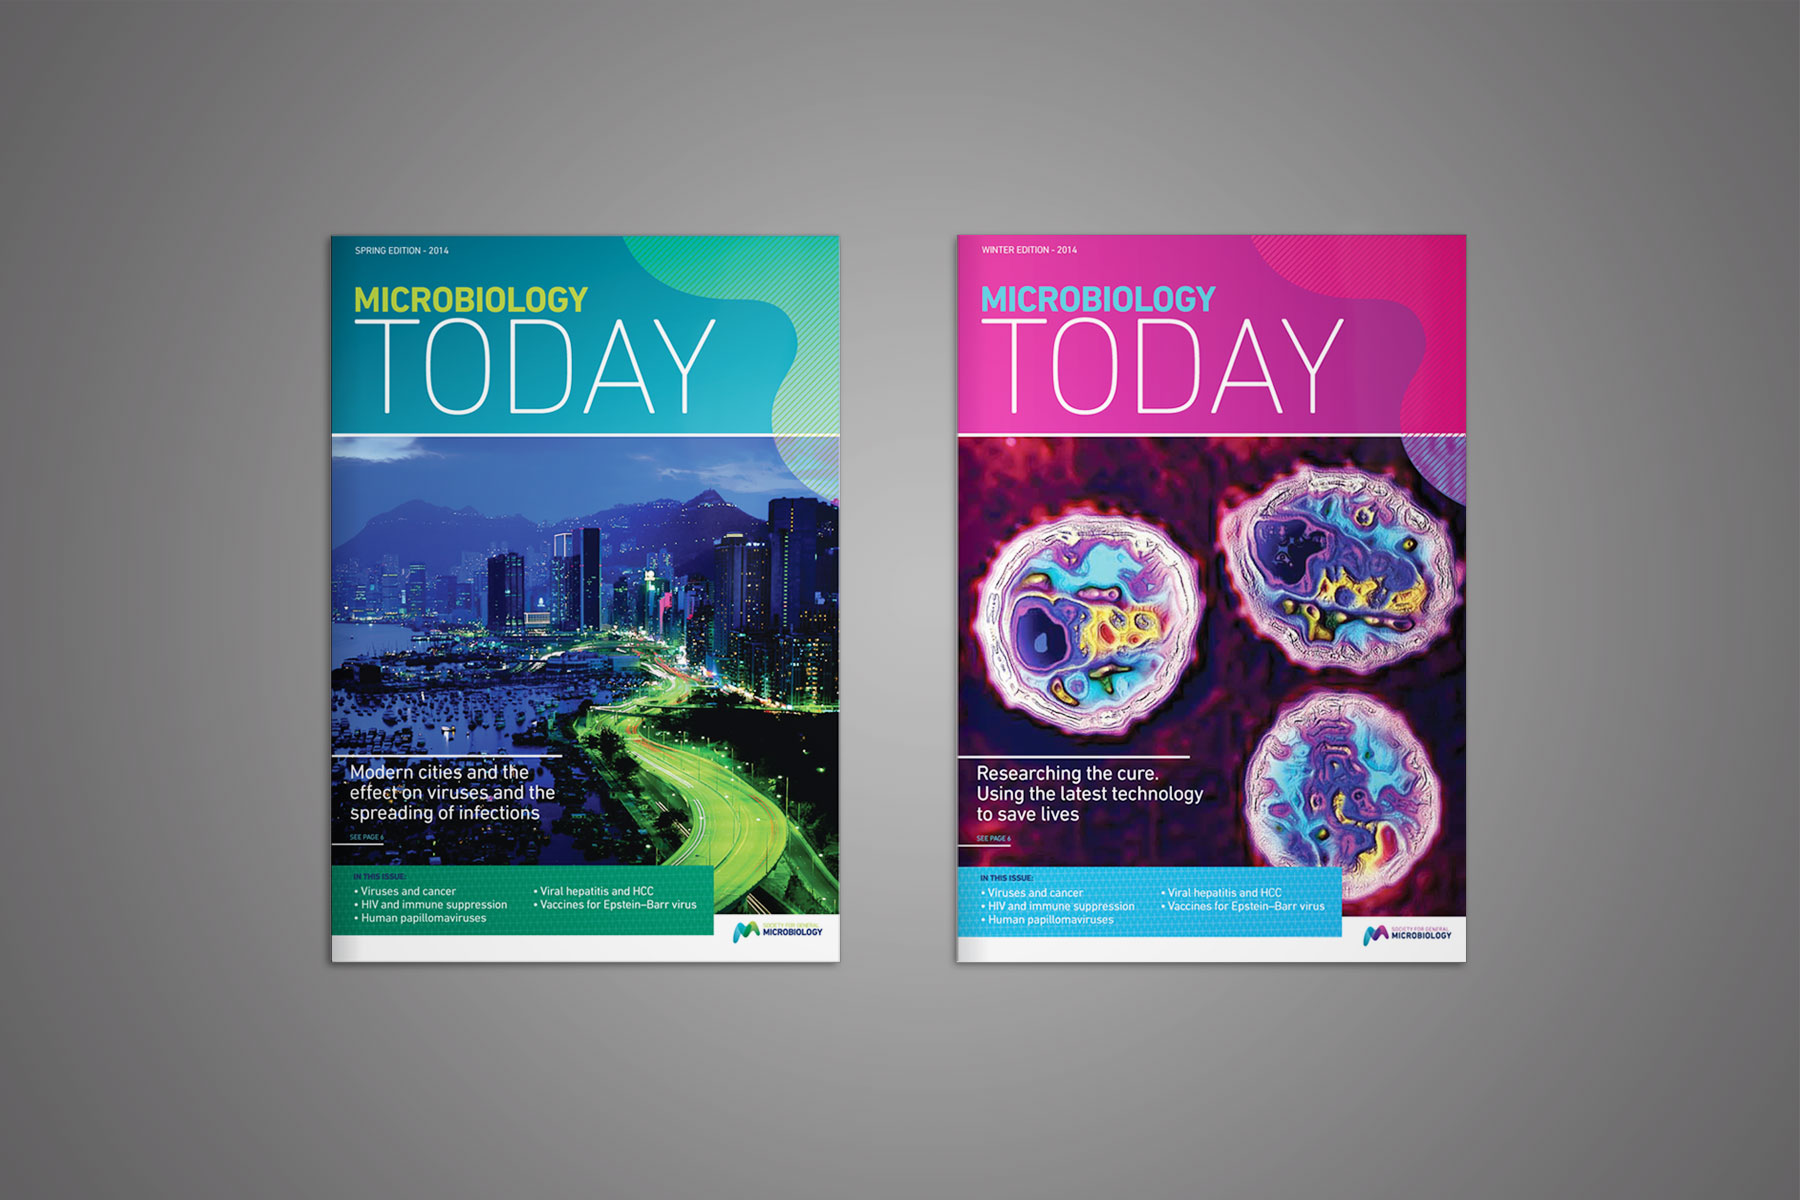 A redesign of Microbiology today - an industry circulated magazine.